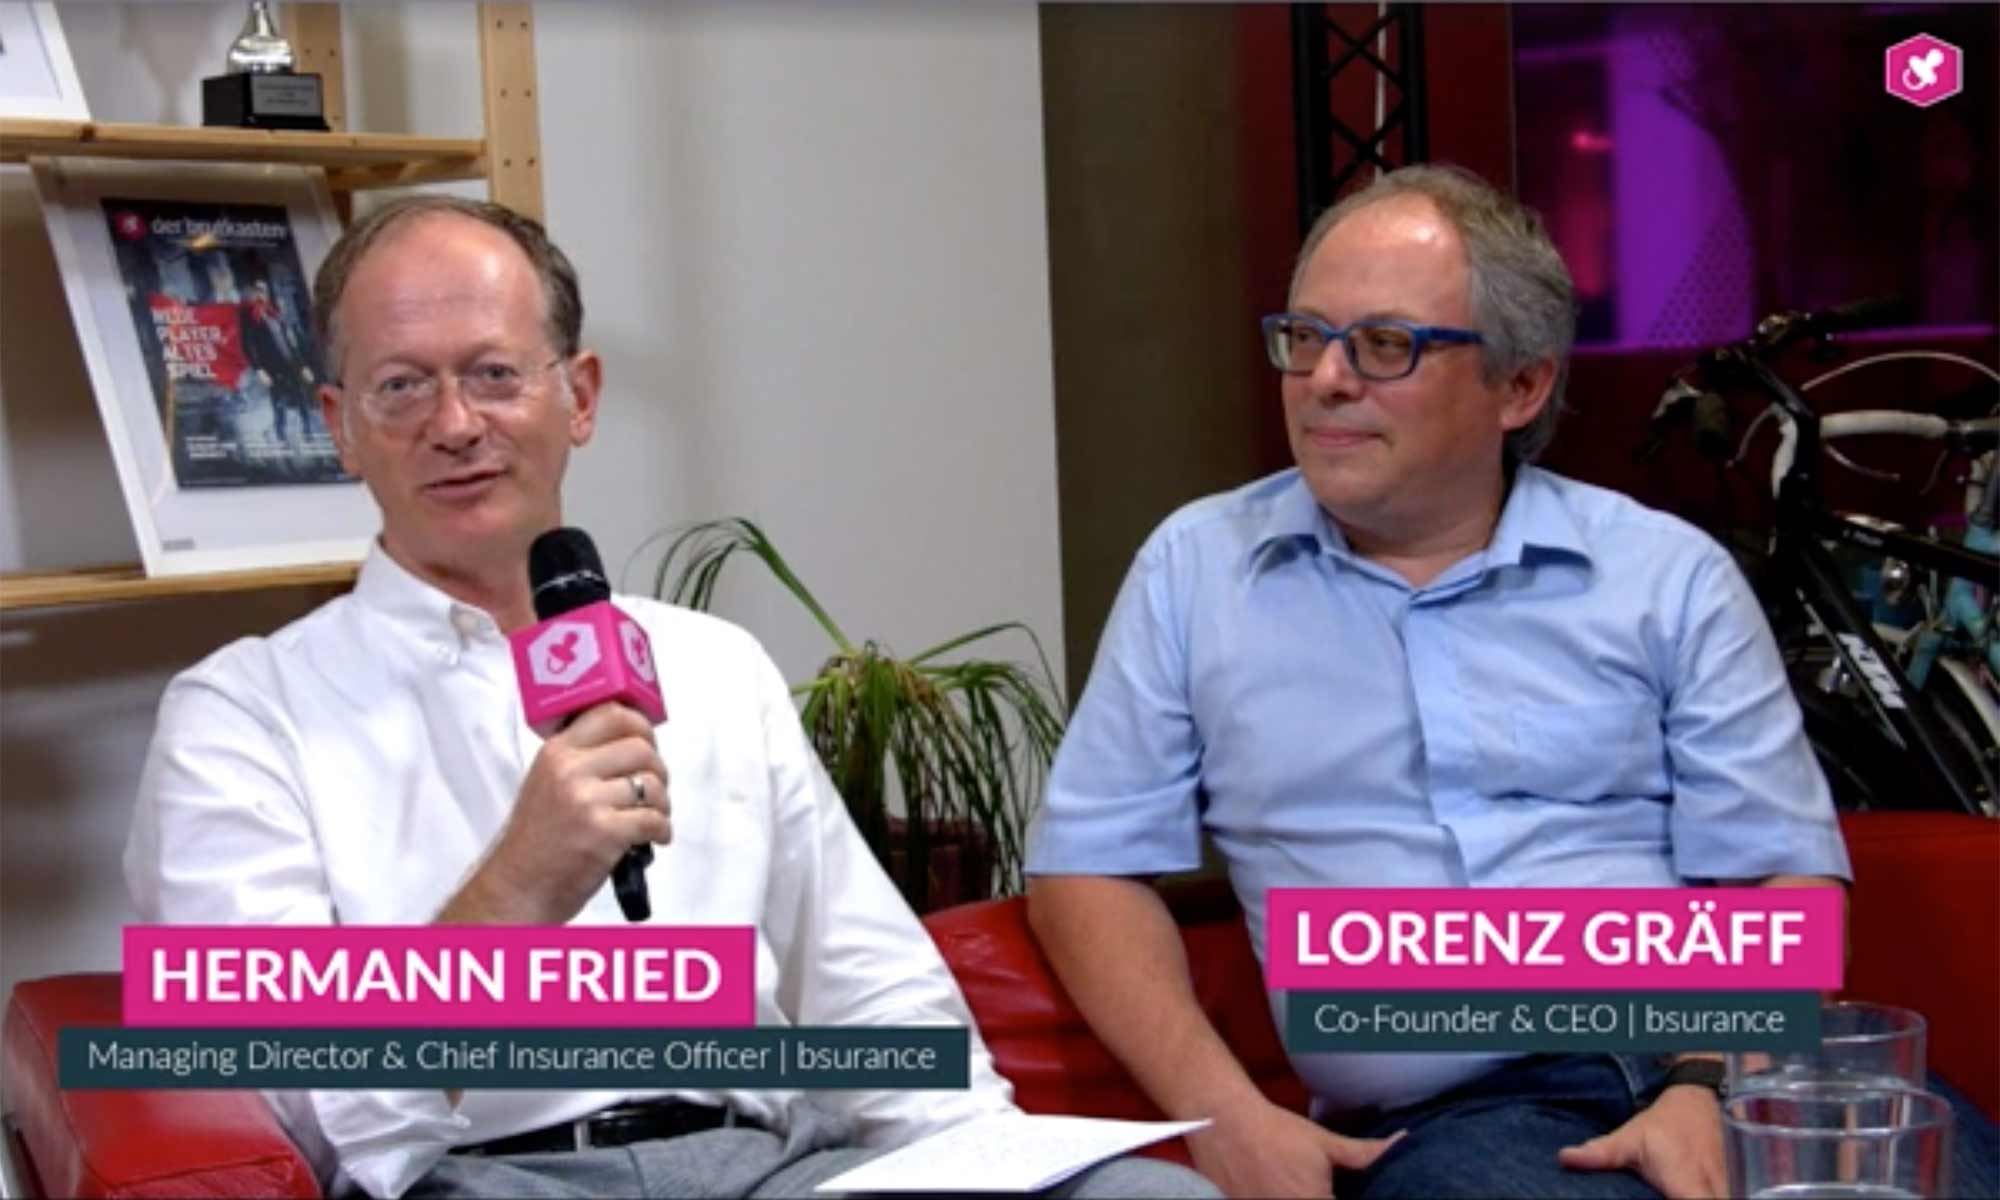 Hermann Fried - Lorenz Gräff - Interview derBrutkasten